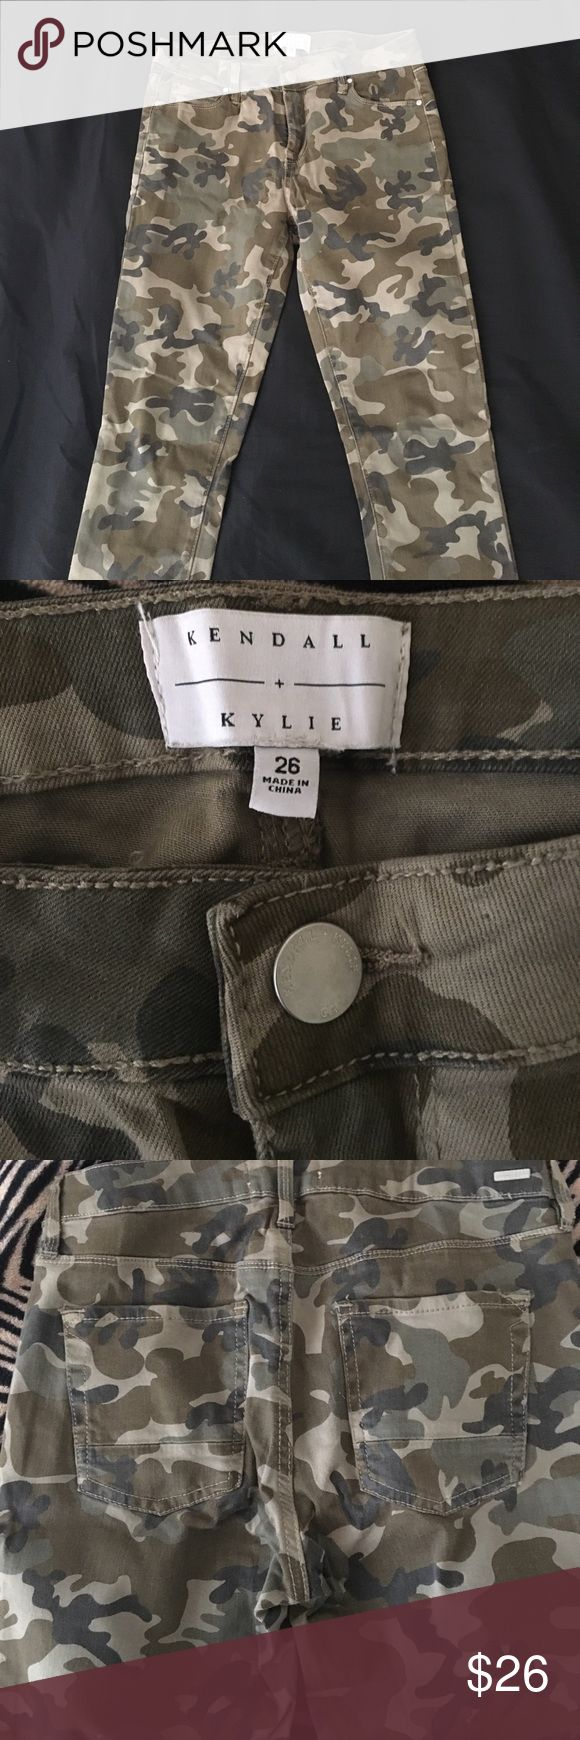 Kendall & Kylie Camo Skinny Jeans Kendall & Kylie Camo Skinny Jeans. Size 26. They were worn once before and now are too small 😪 cutest jeans ever!❤ Kendall & Kylie Pants Skinny